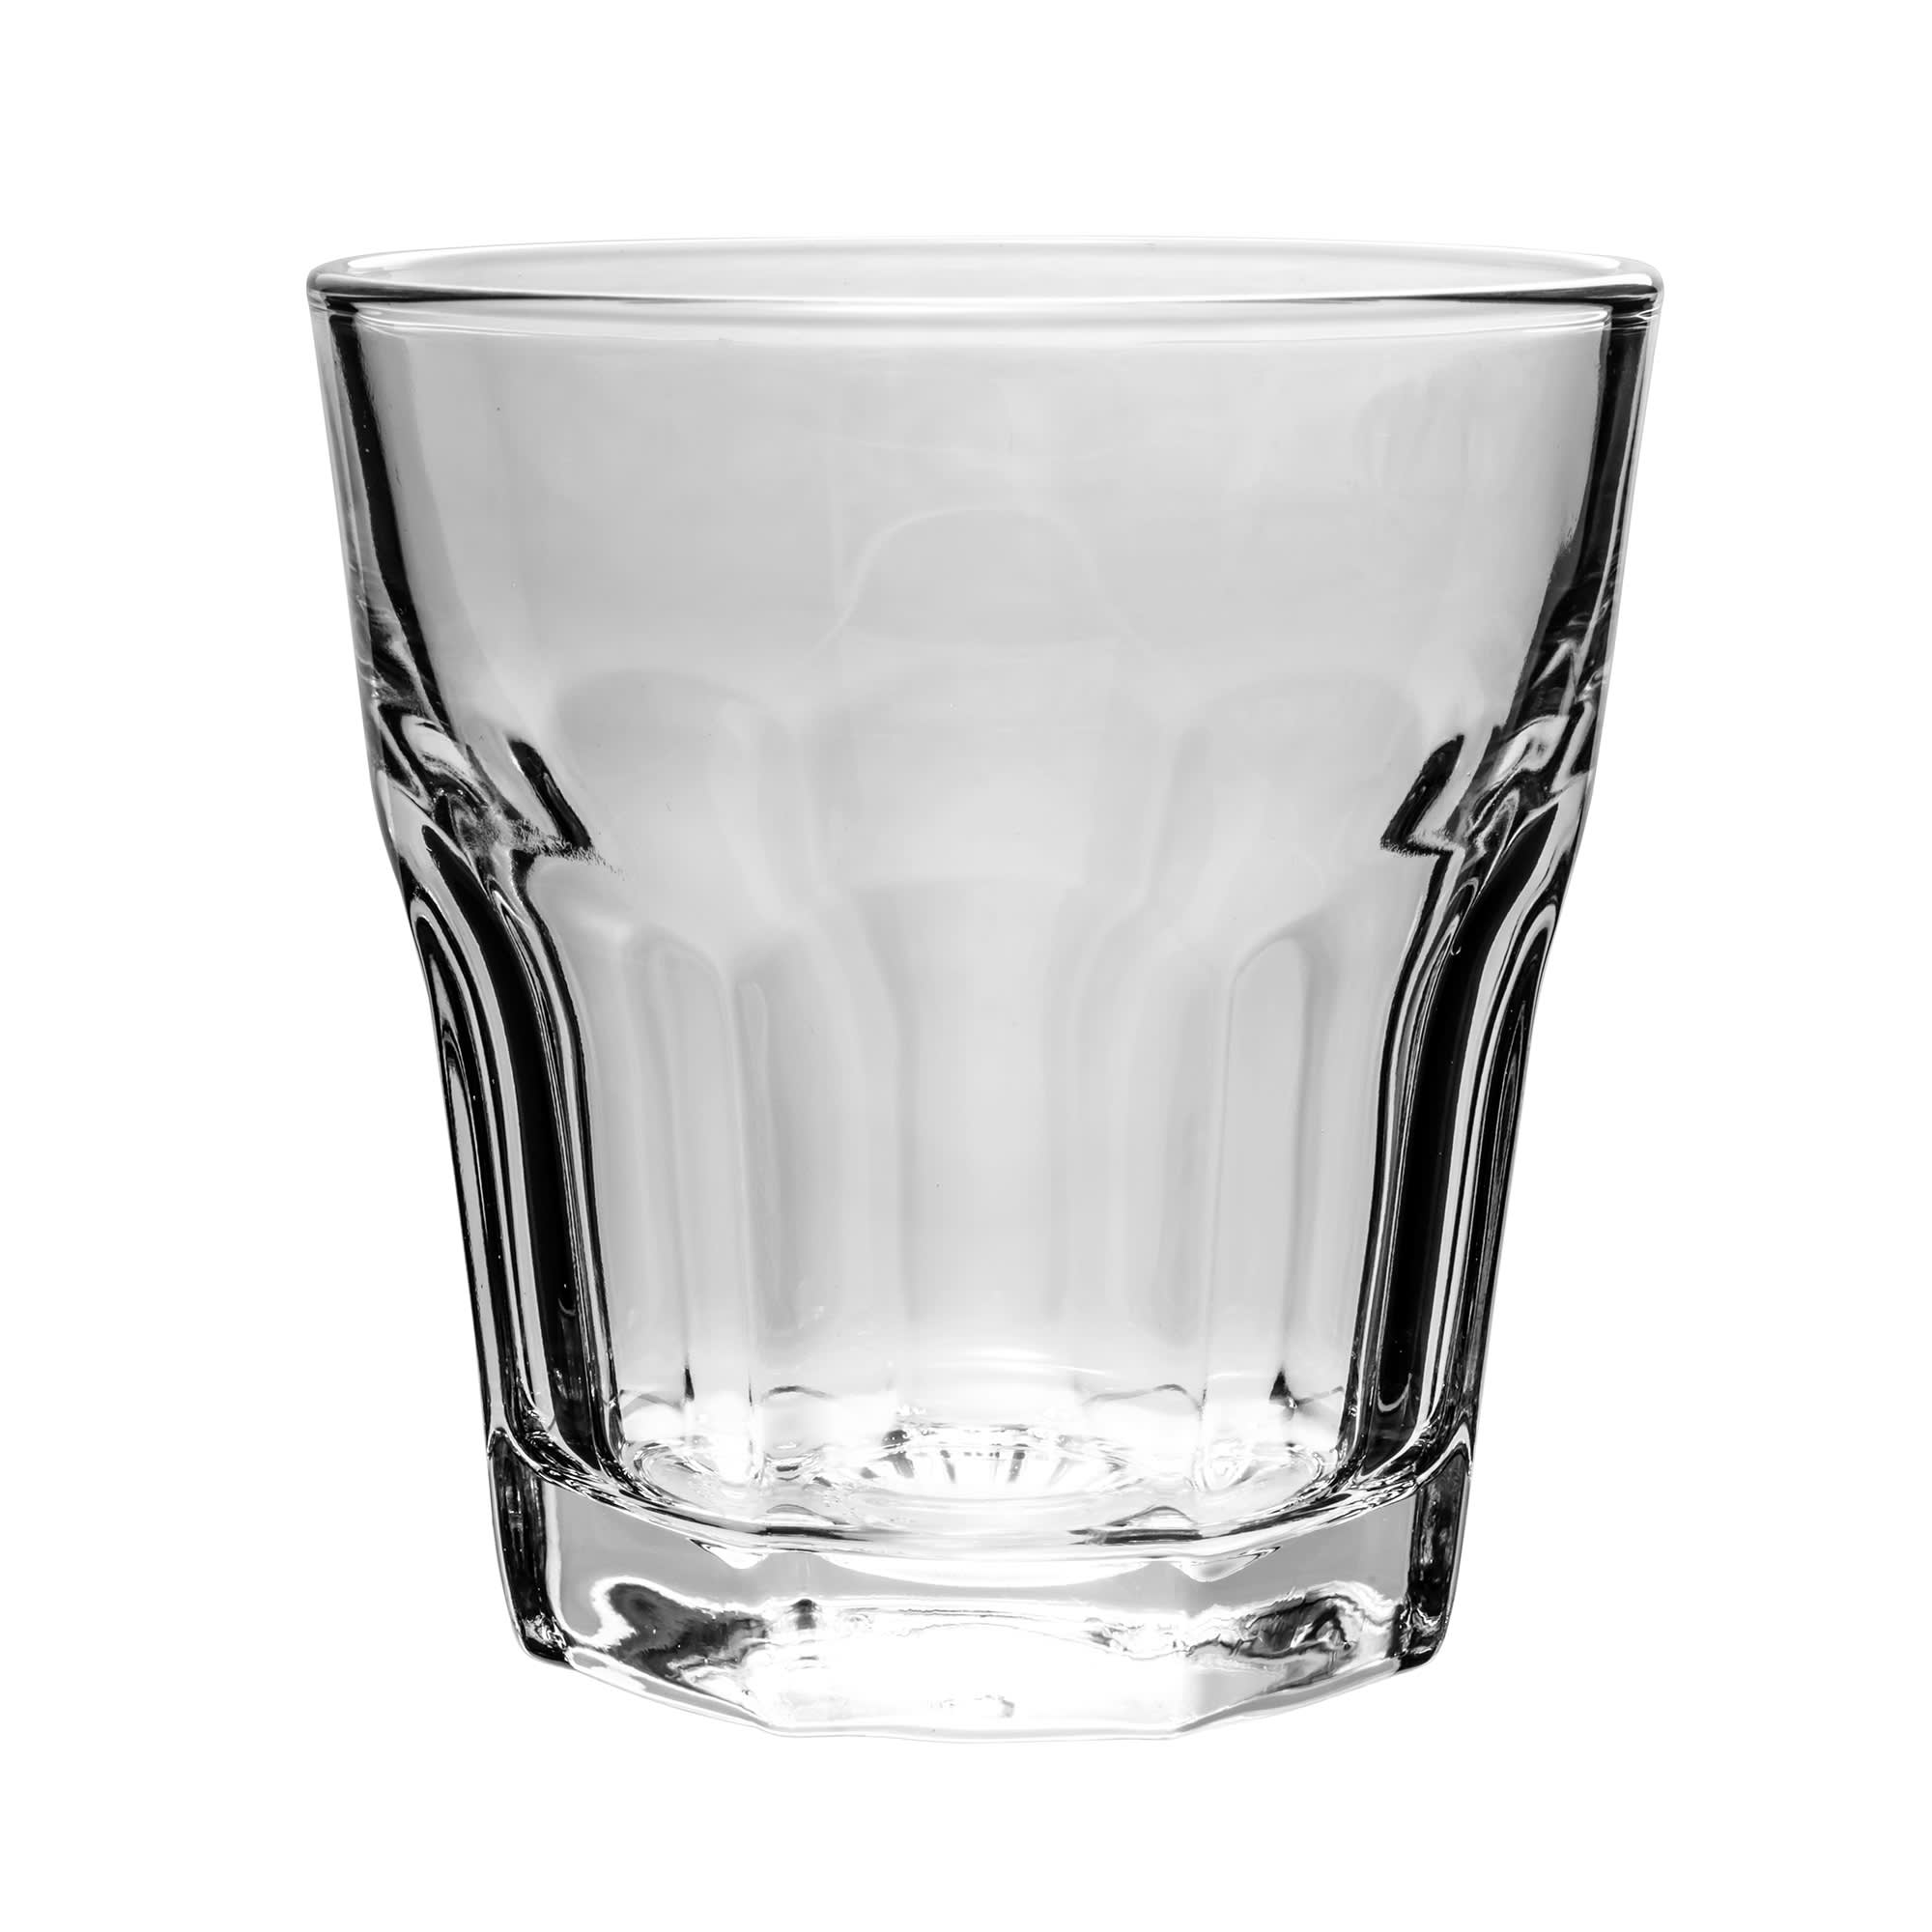 Libbey 15242 9-oz Rocks Glass - Gibraltar